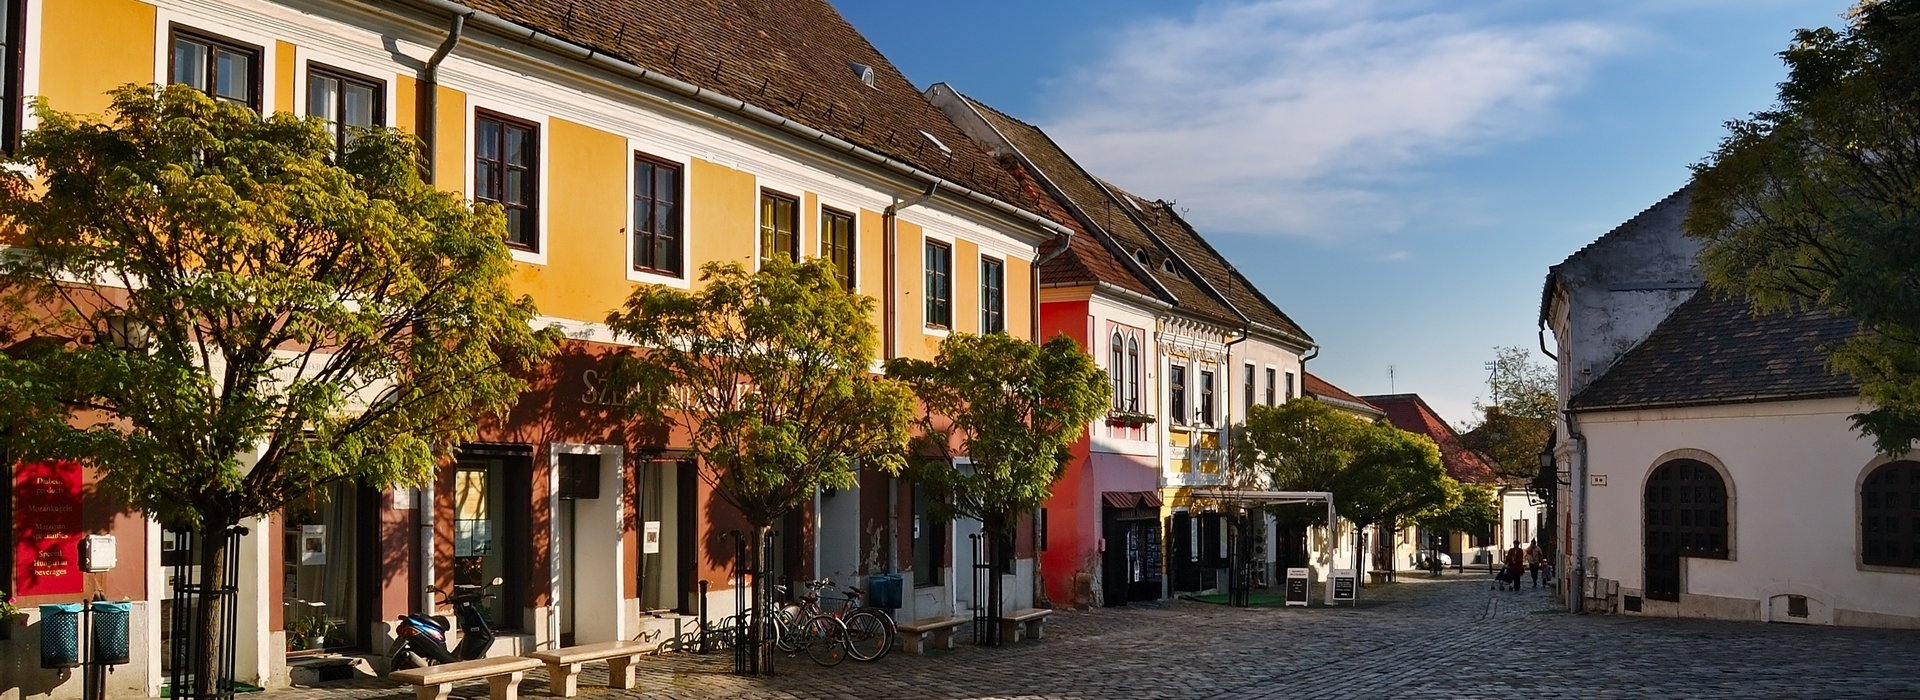 Szentendre Restaurante